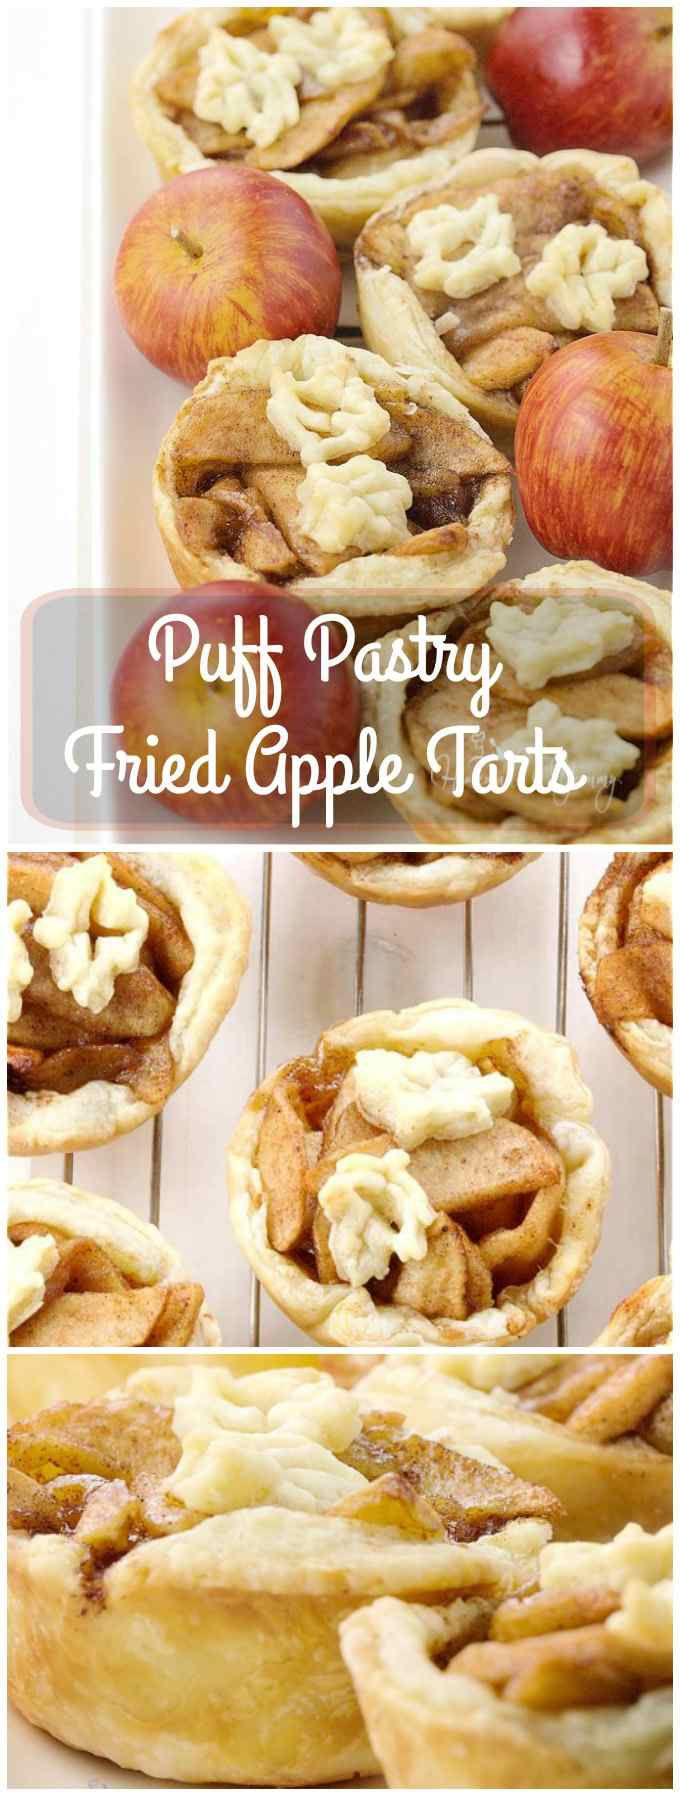 Puff Pastry Fried Apple Tarts long pin image.